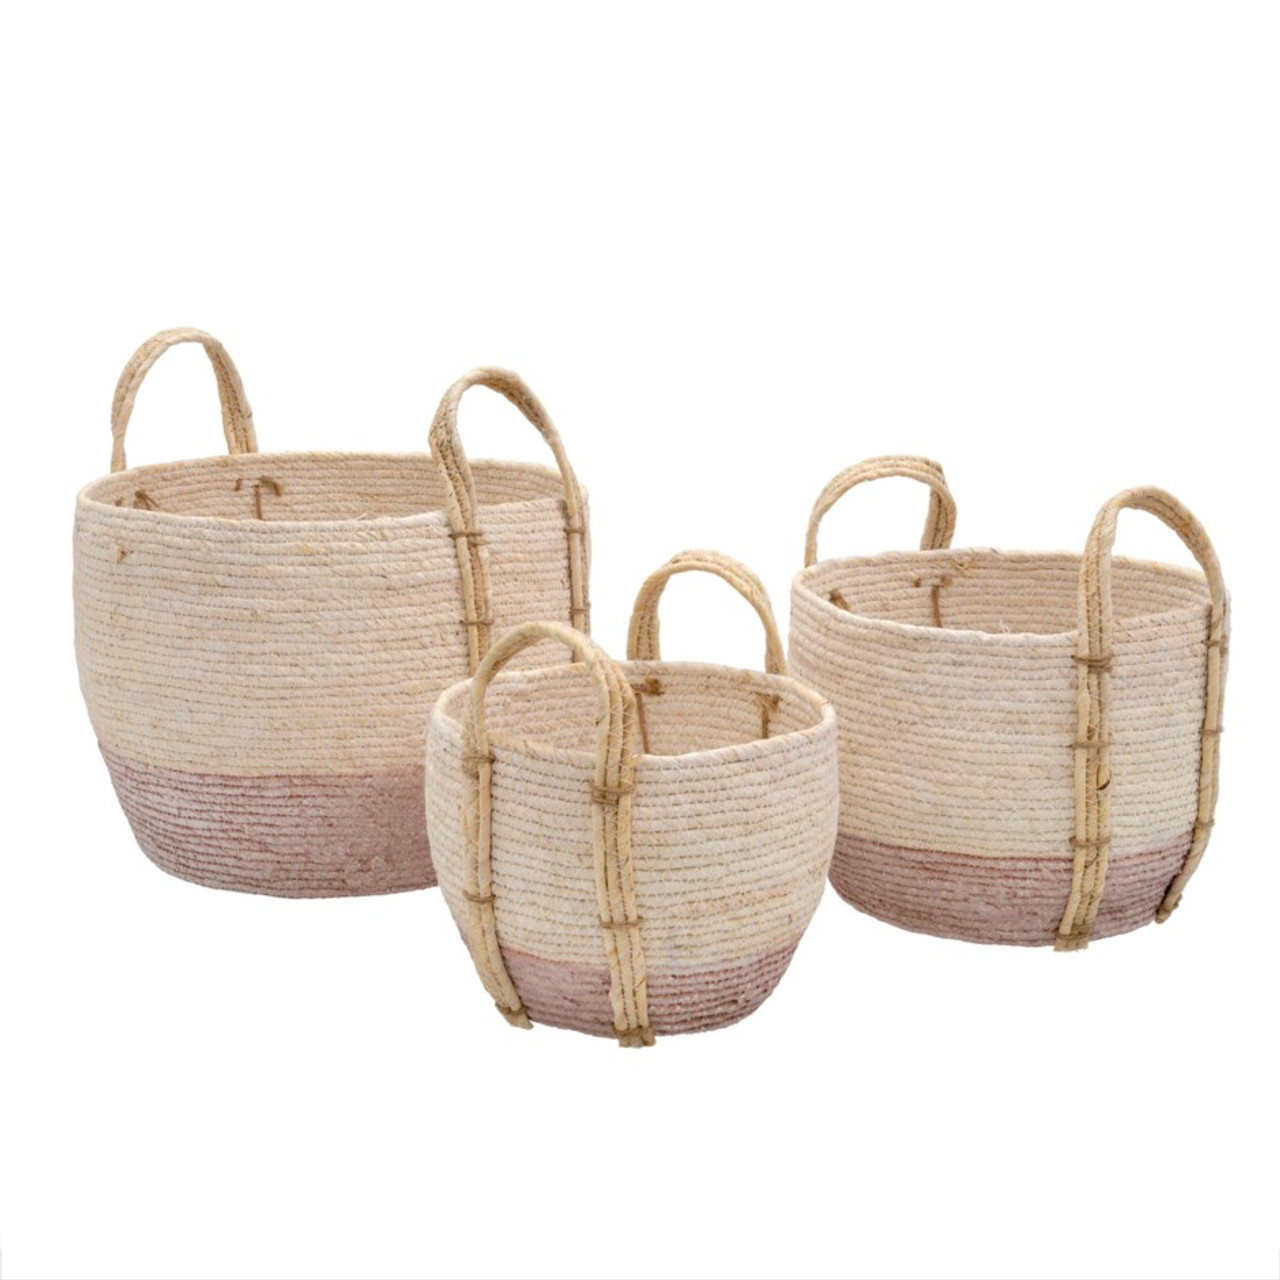 SHORE BASKETS PINK - SET OF 3